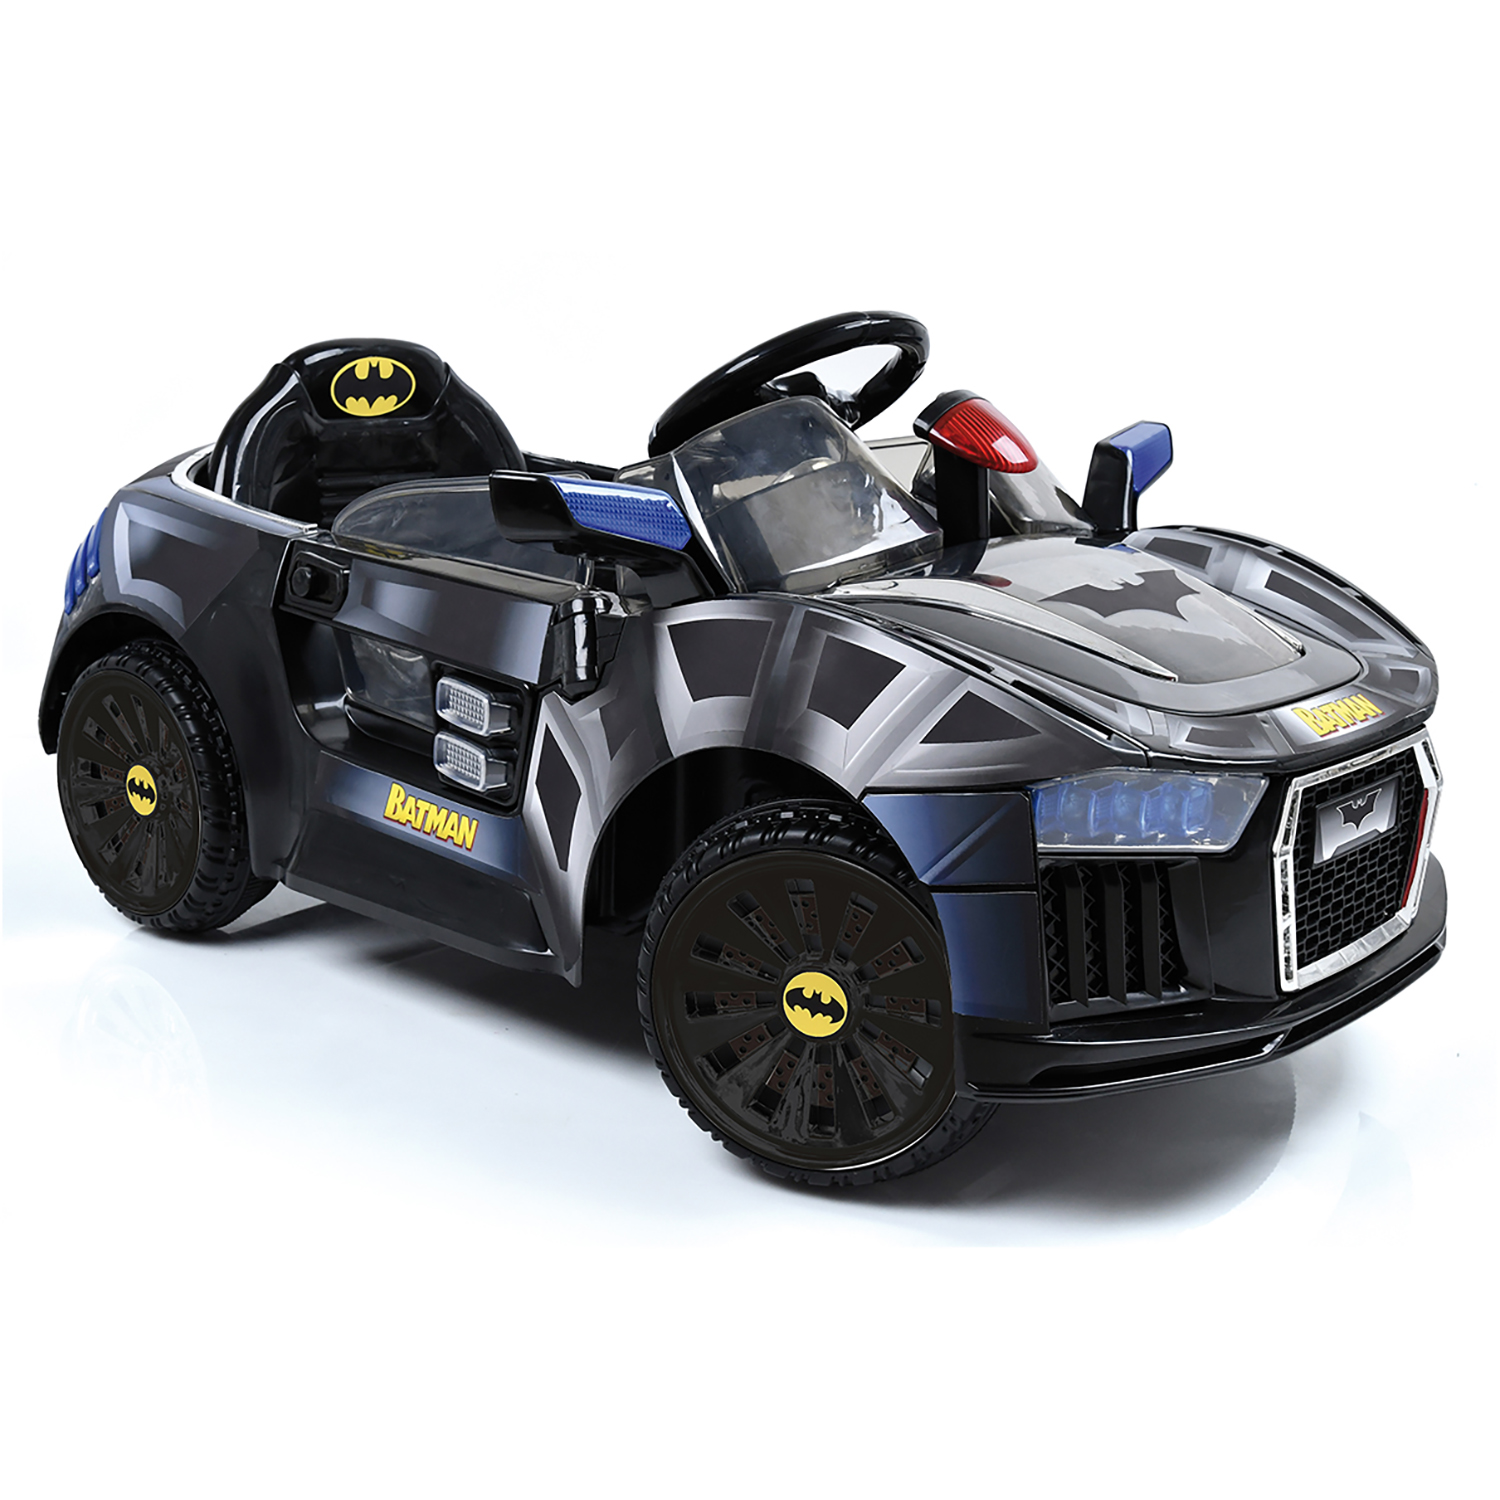 Hauck Batmobile 6V Battery Powered Electric Ride-On Sports Car (Batman) by Hauck